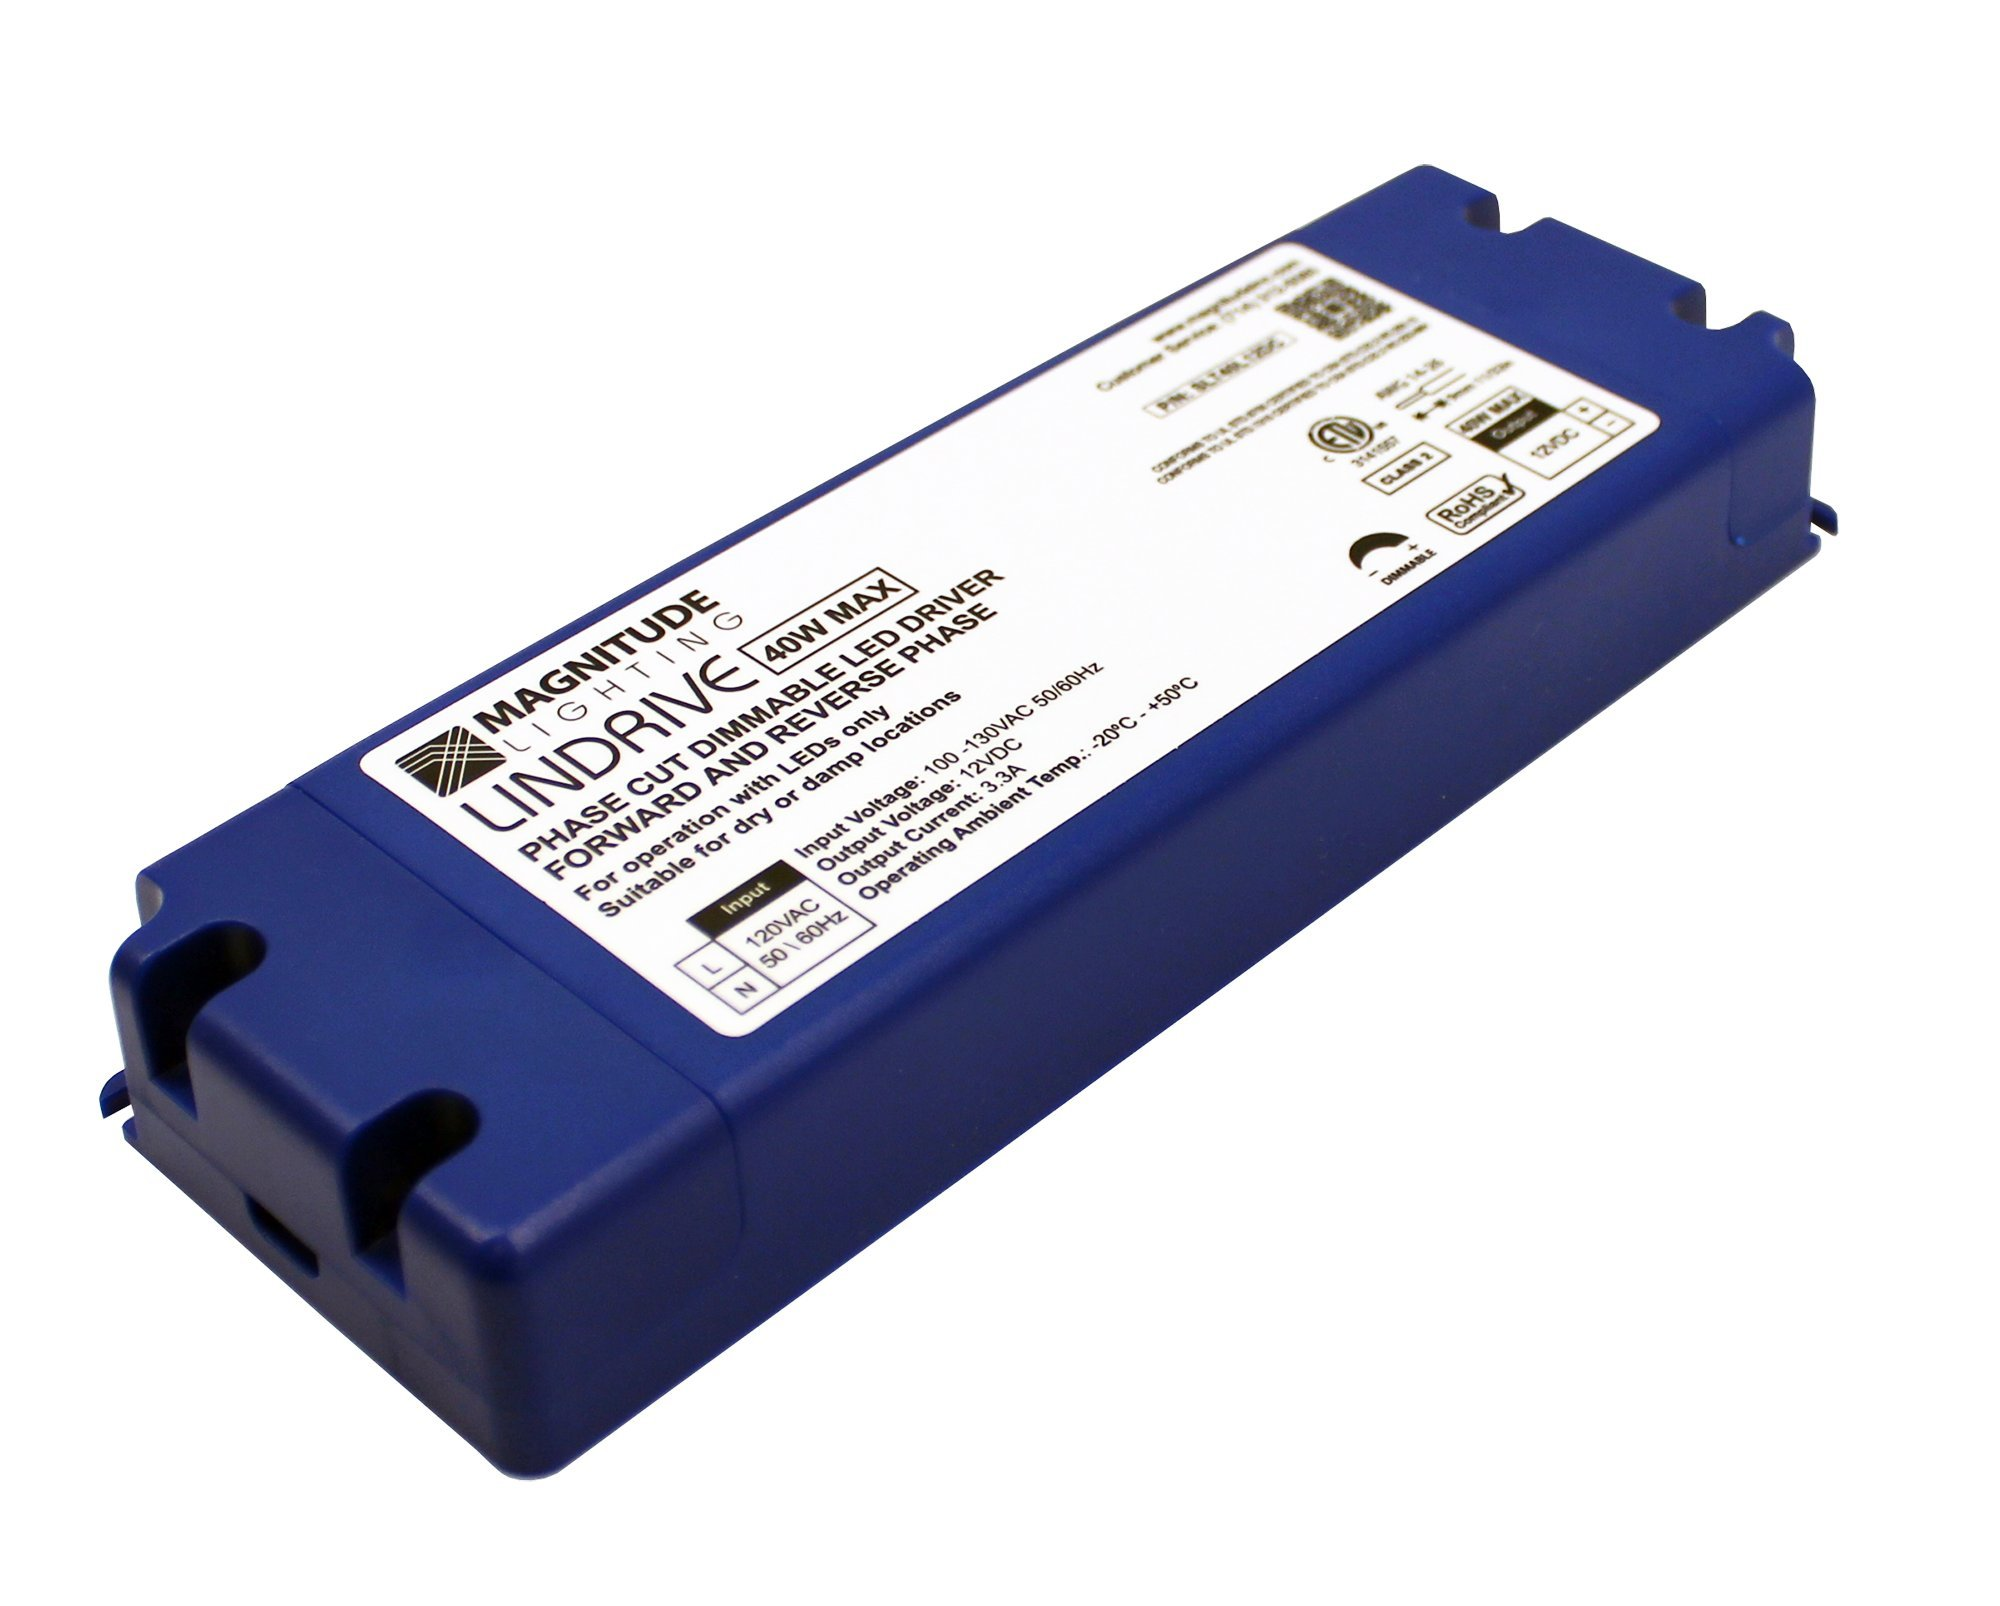 LED Driver - LINDRIVE - Magnitude 40W 12V LED Dimmable Transformer SLT40L12DC from Inspired LED Electronic Series by Inspired LED (Image #1)